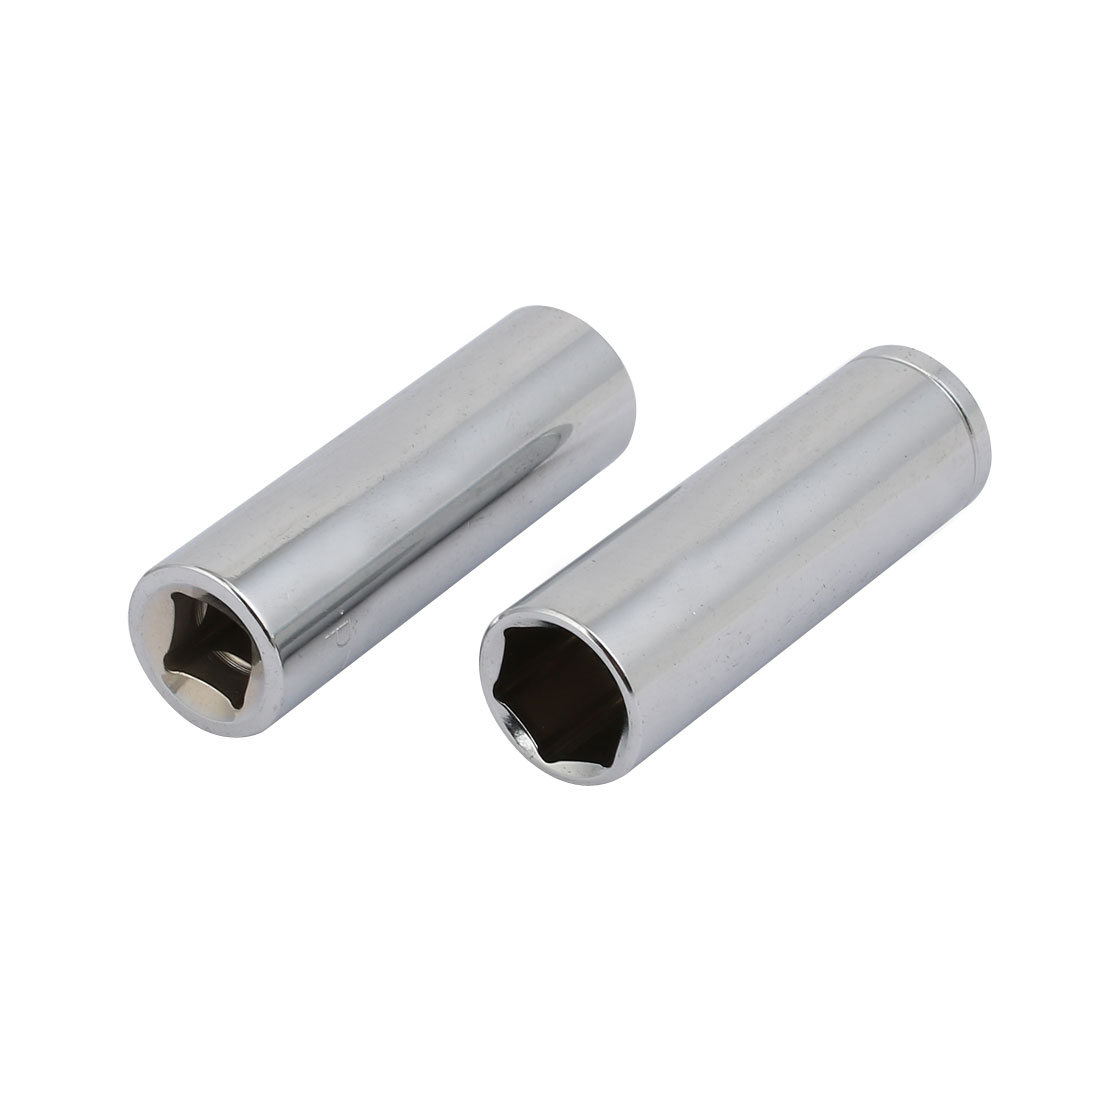 3/8-inch Square Drive 9/16-inch Hex 6 Point Deep Impact Socket Silver Tone 2pcs